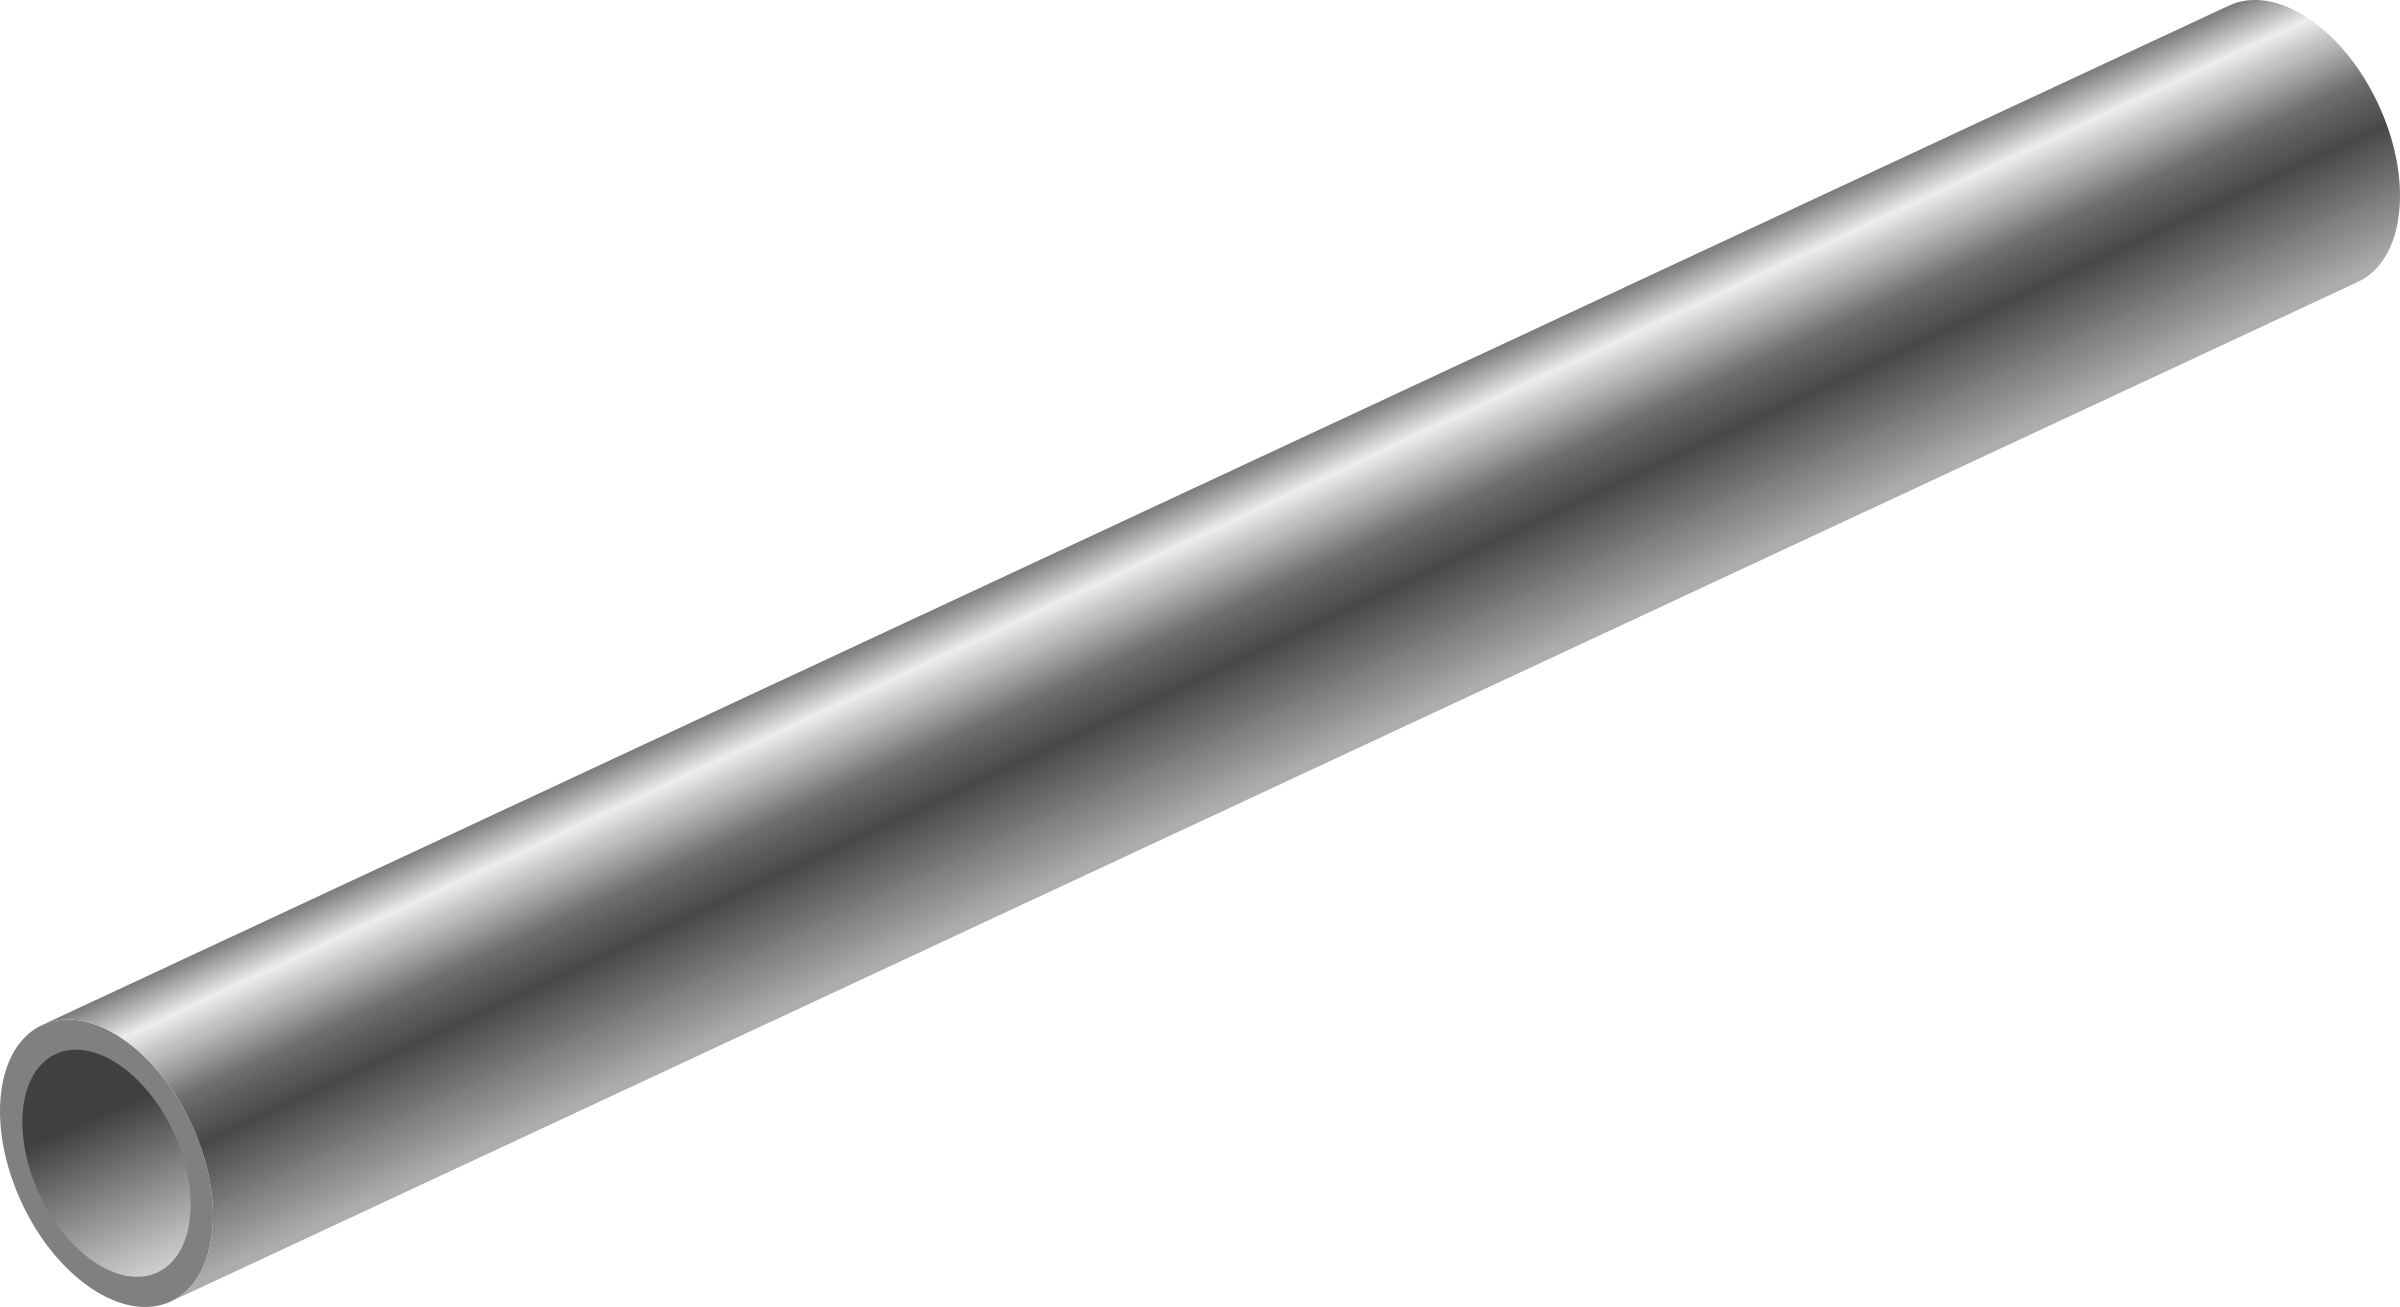 Transparent pipes steel. Pipe png black and